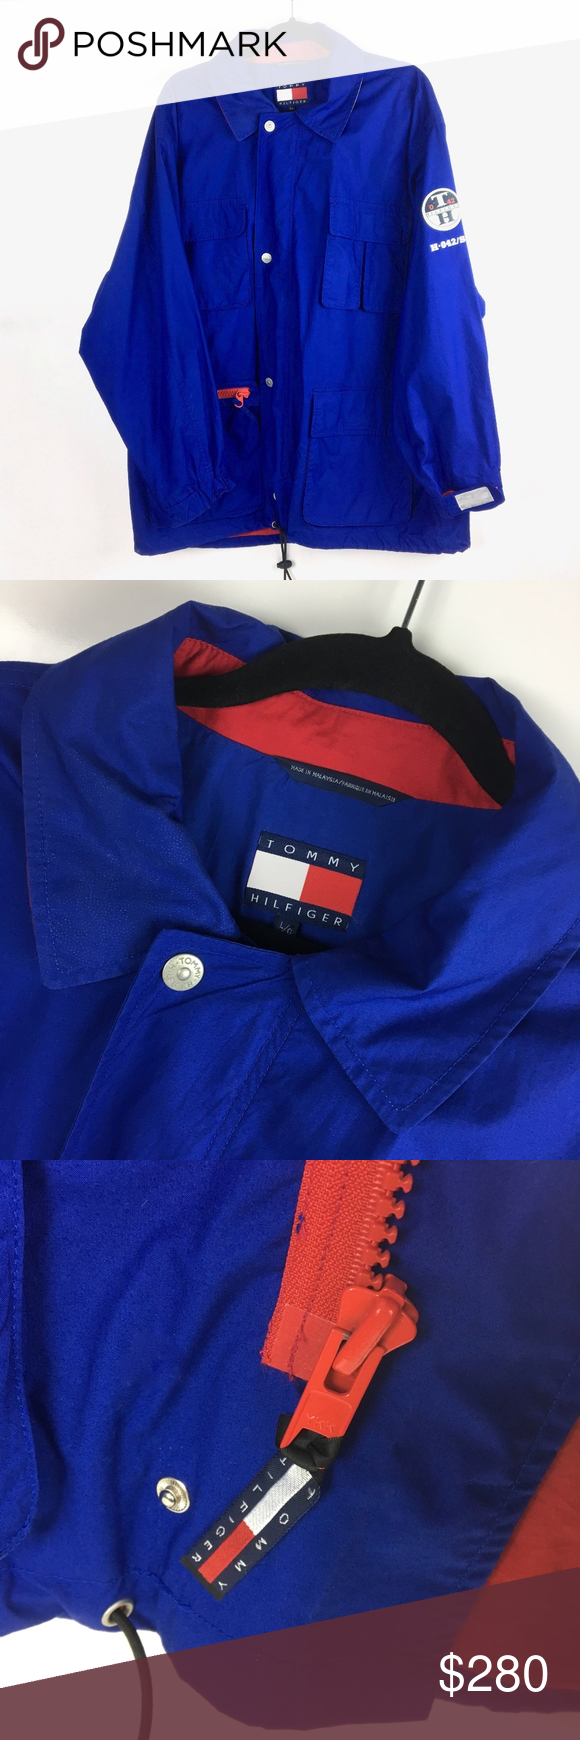 Tommy Hilfiger > 90's Star Class Sailing Jacket (With